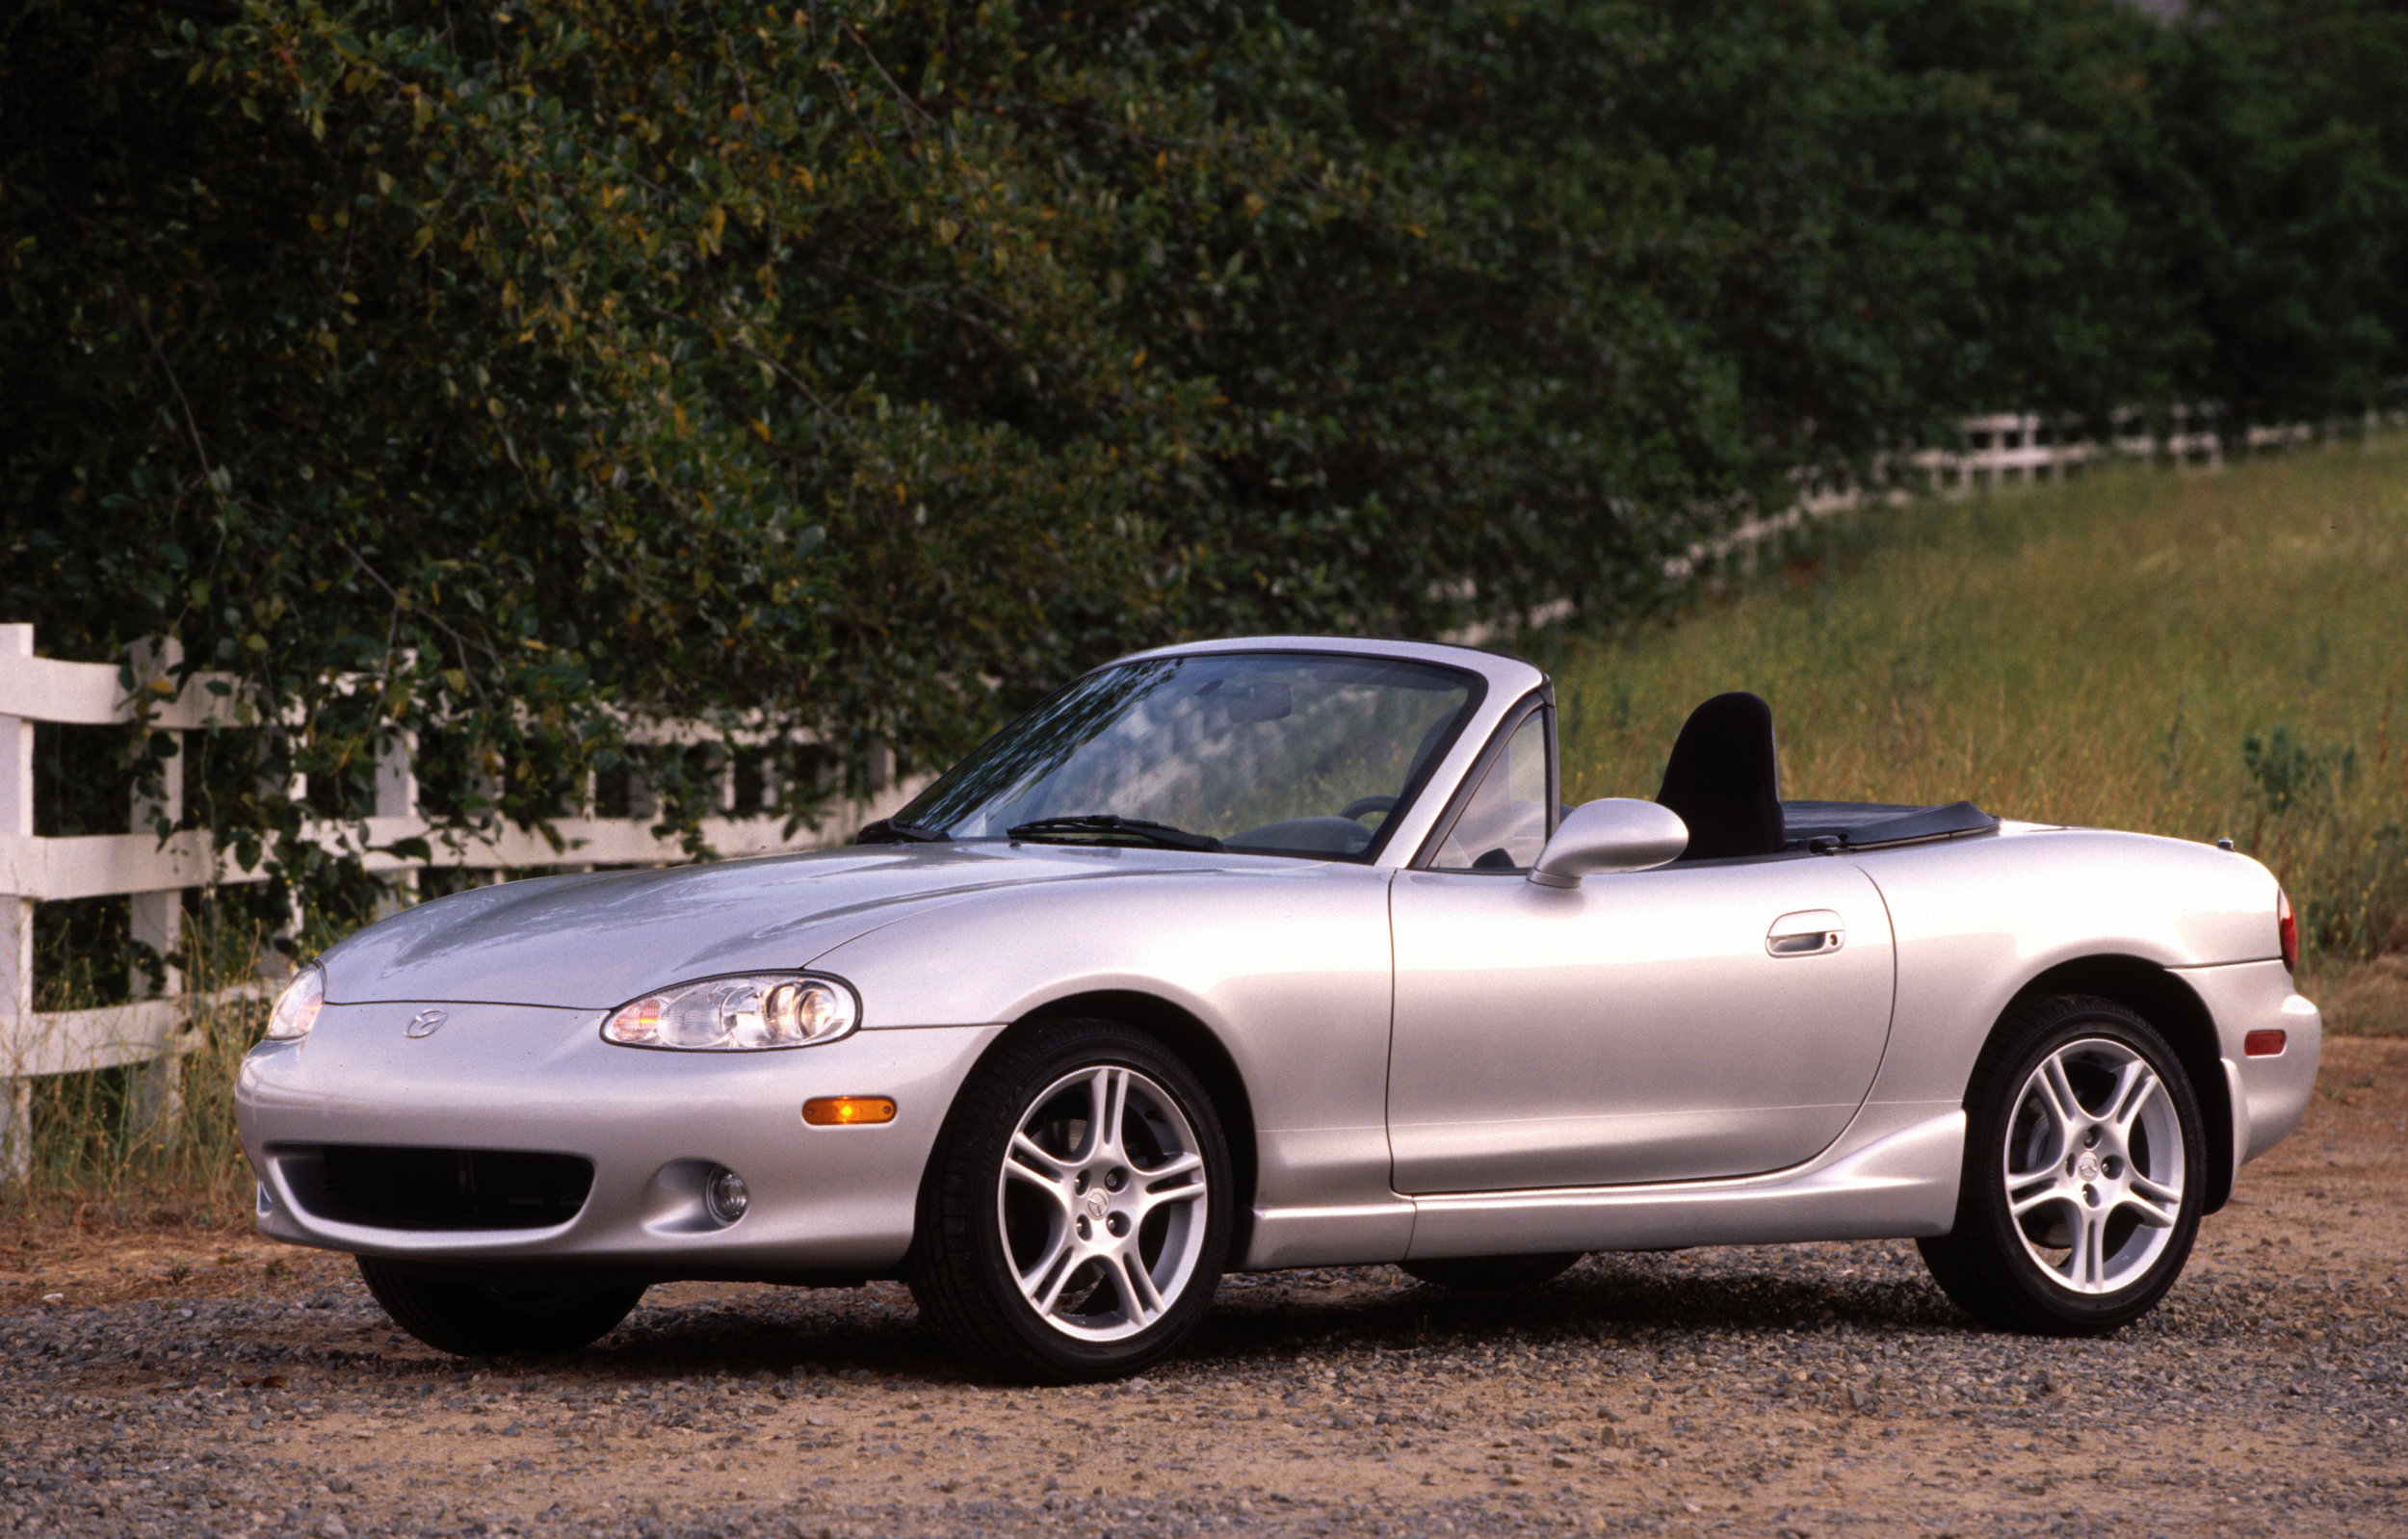 2004_Mazda_MX-5_Miata_front-3-4-beauty-1.jpg